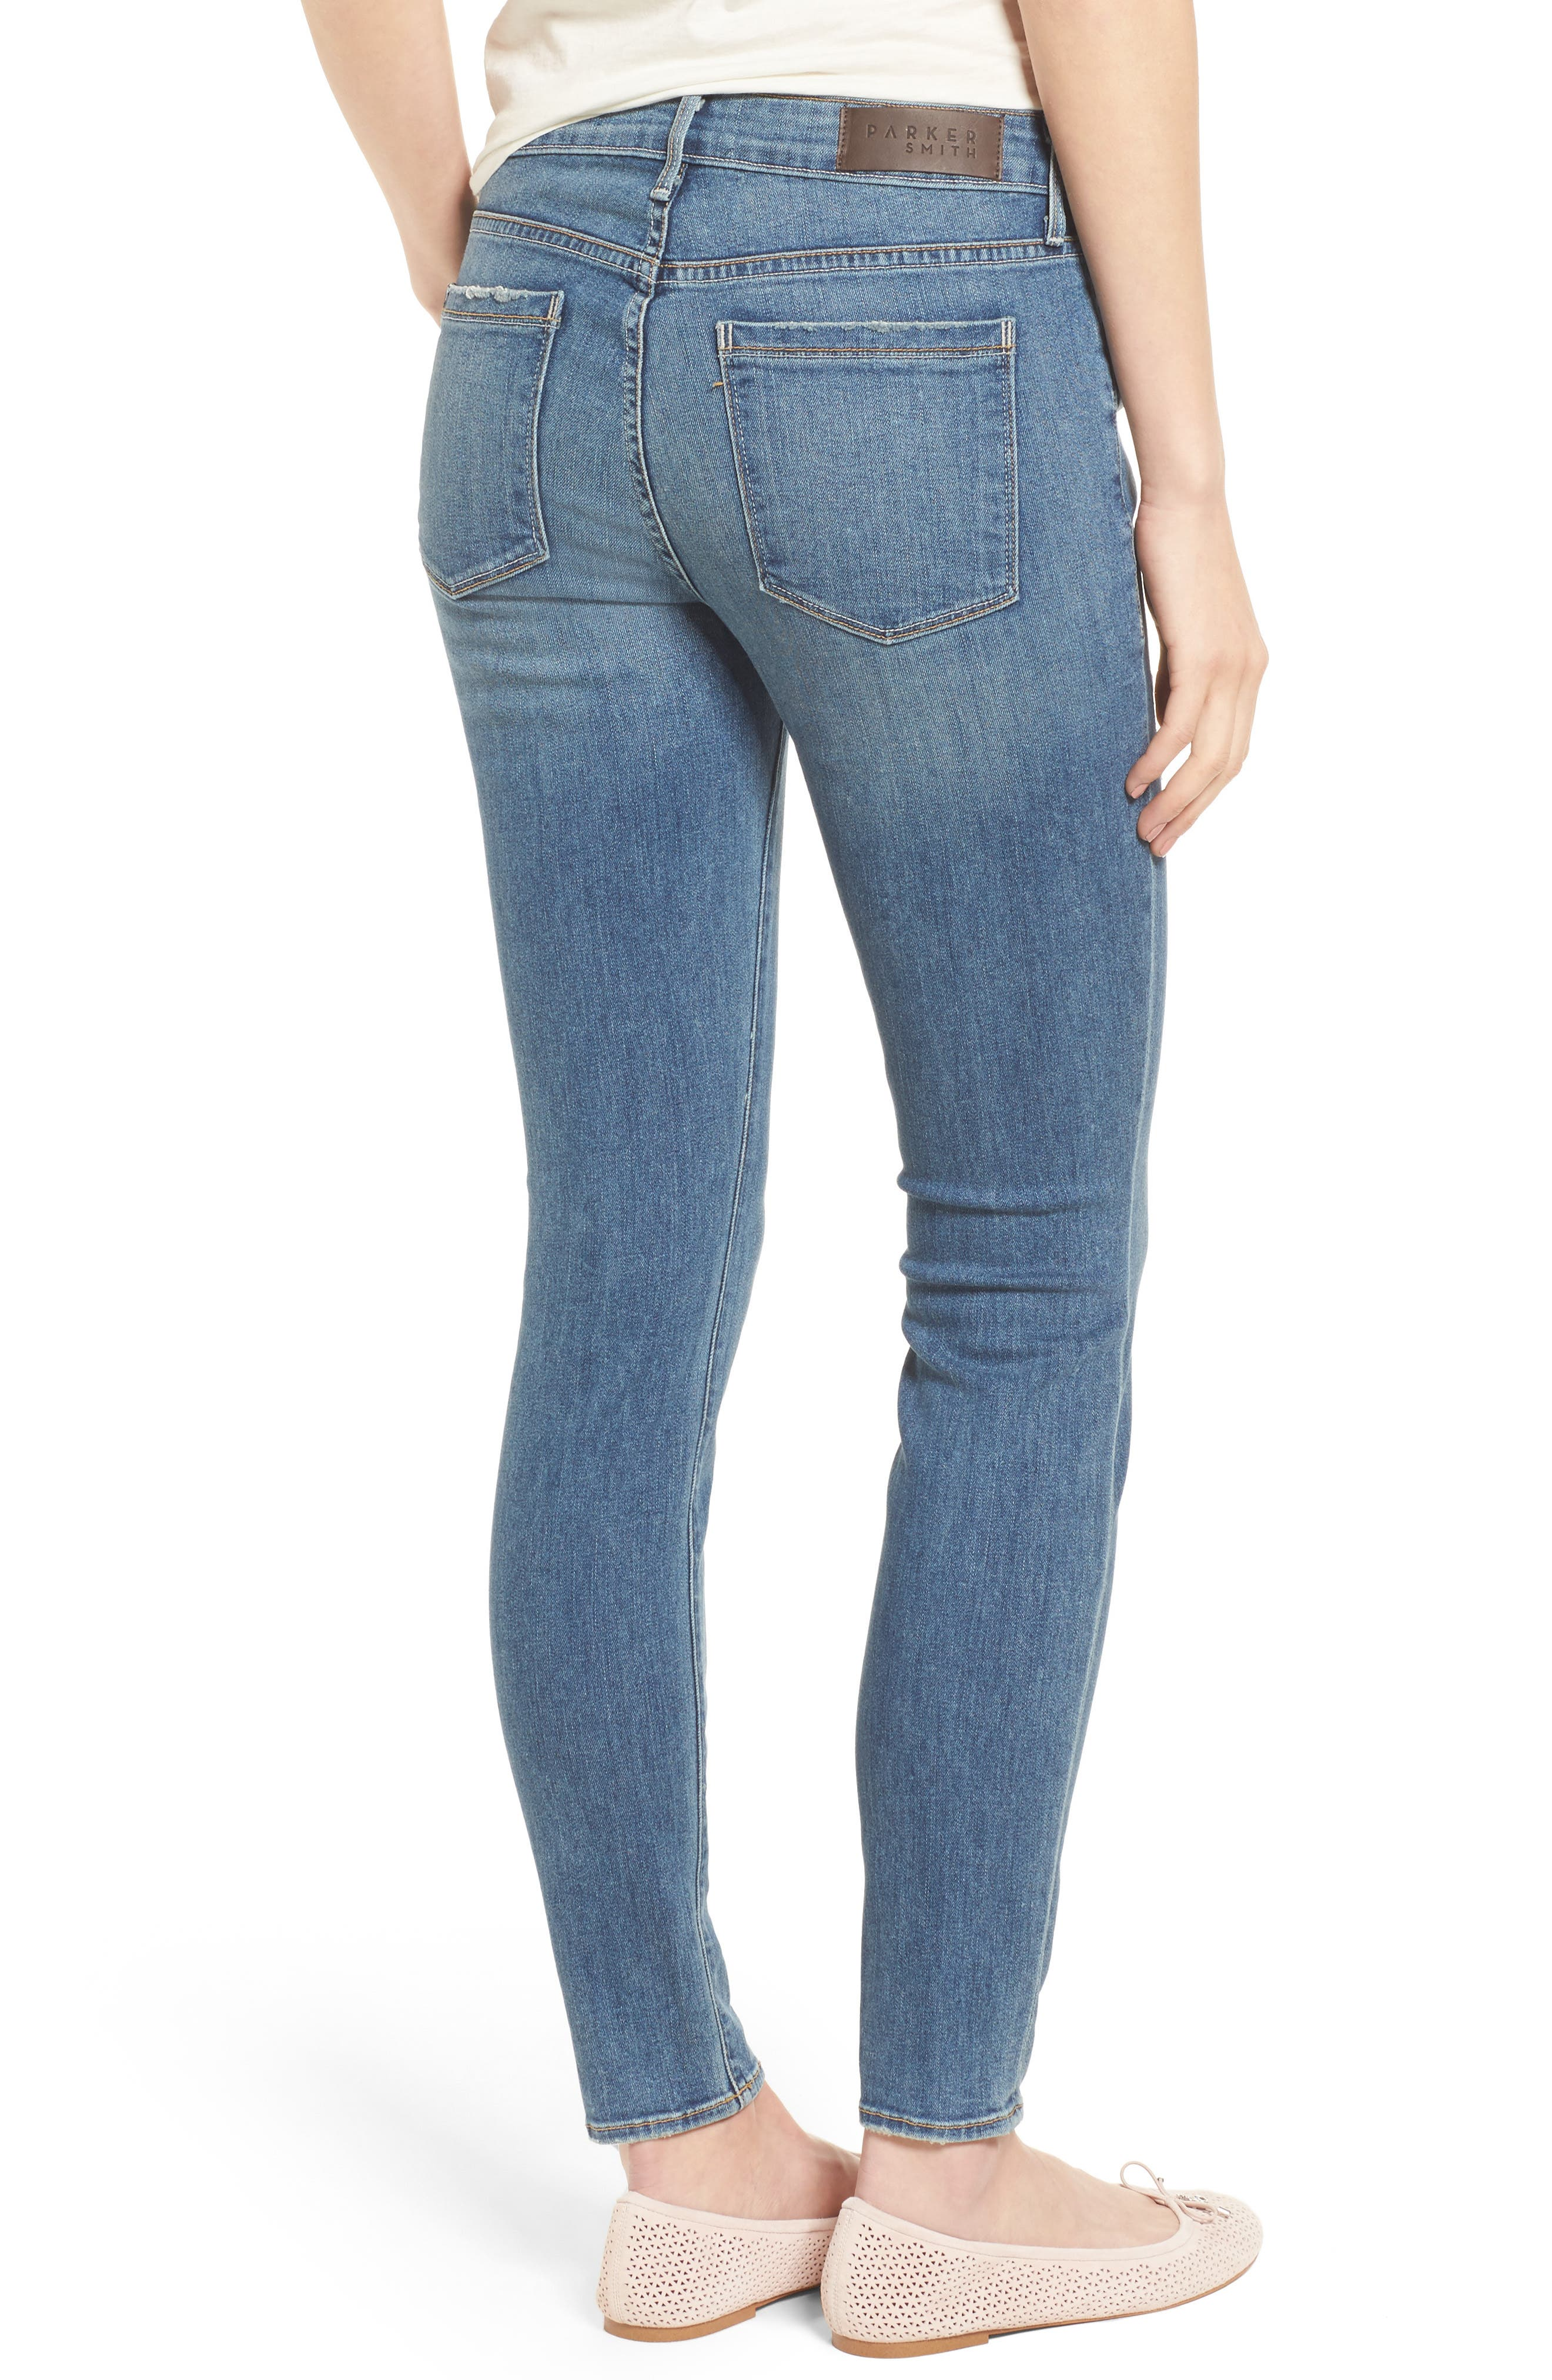 Ava Stretch Skinny Jeans,                             Alternate thumbnail 2, color,                             Liverpool